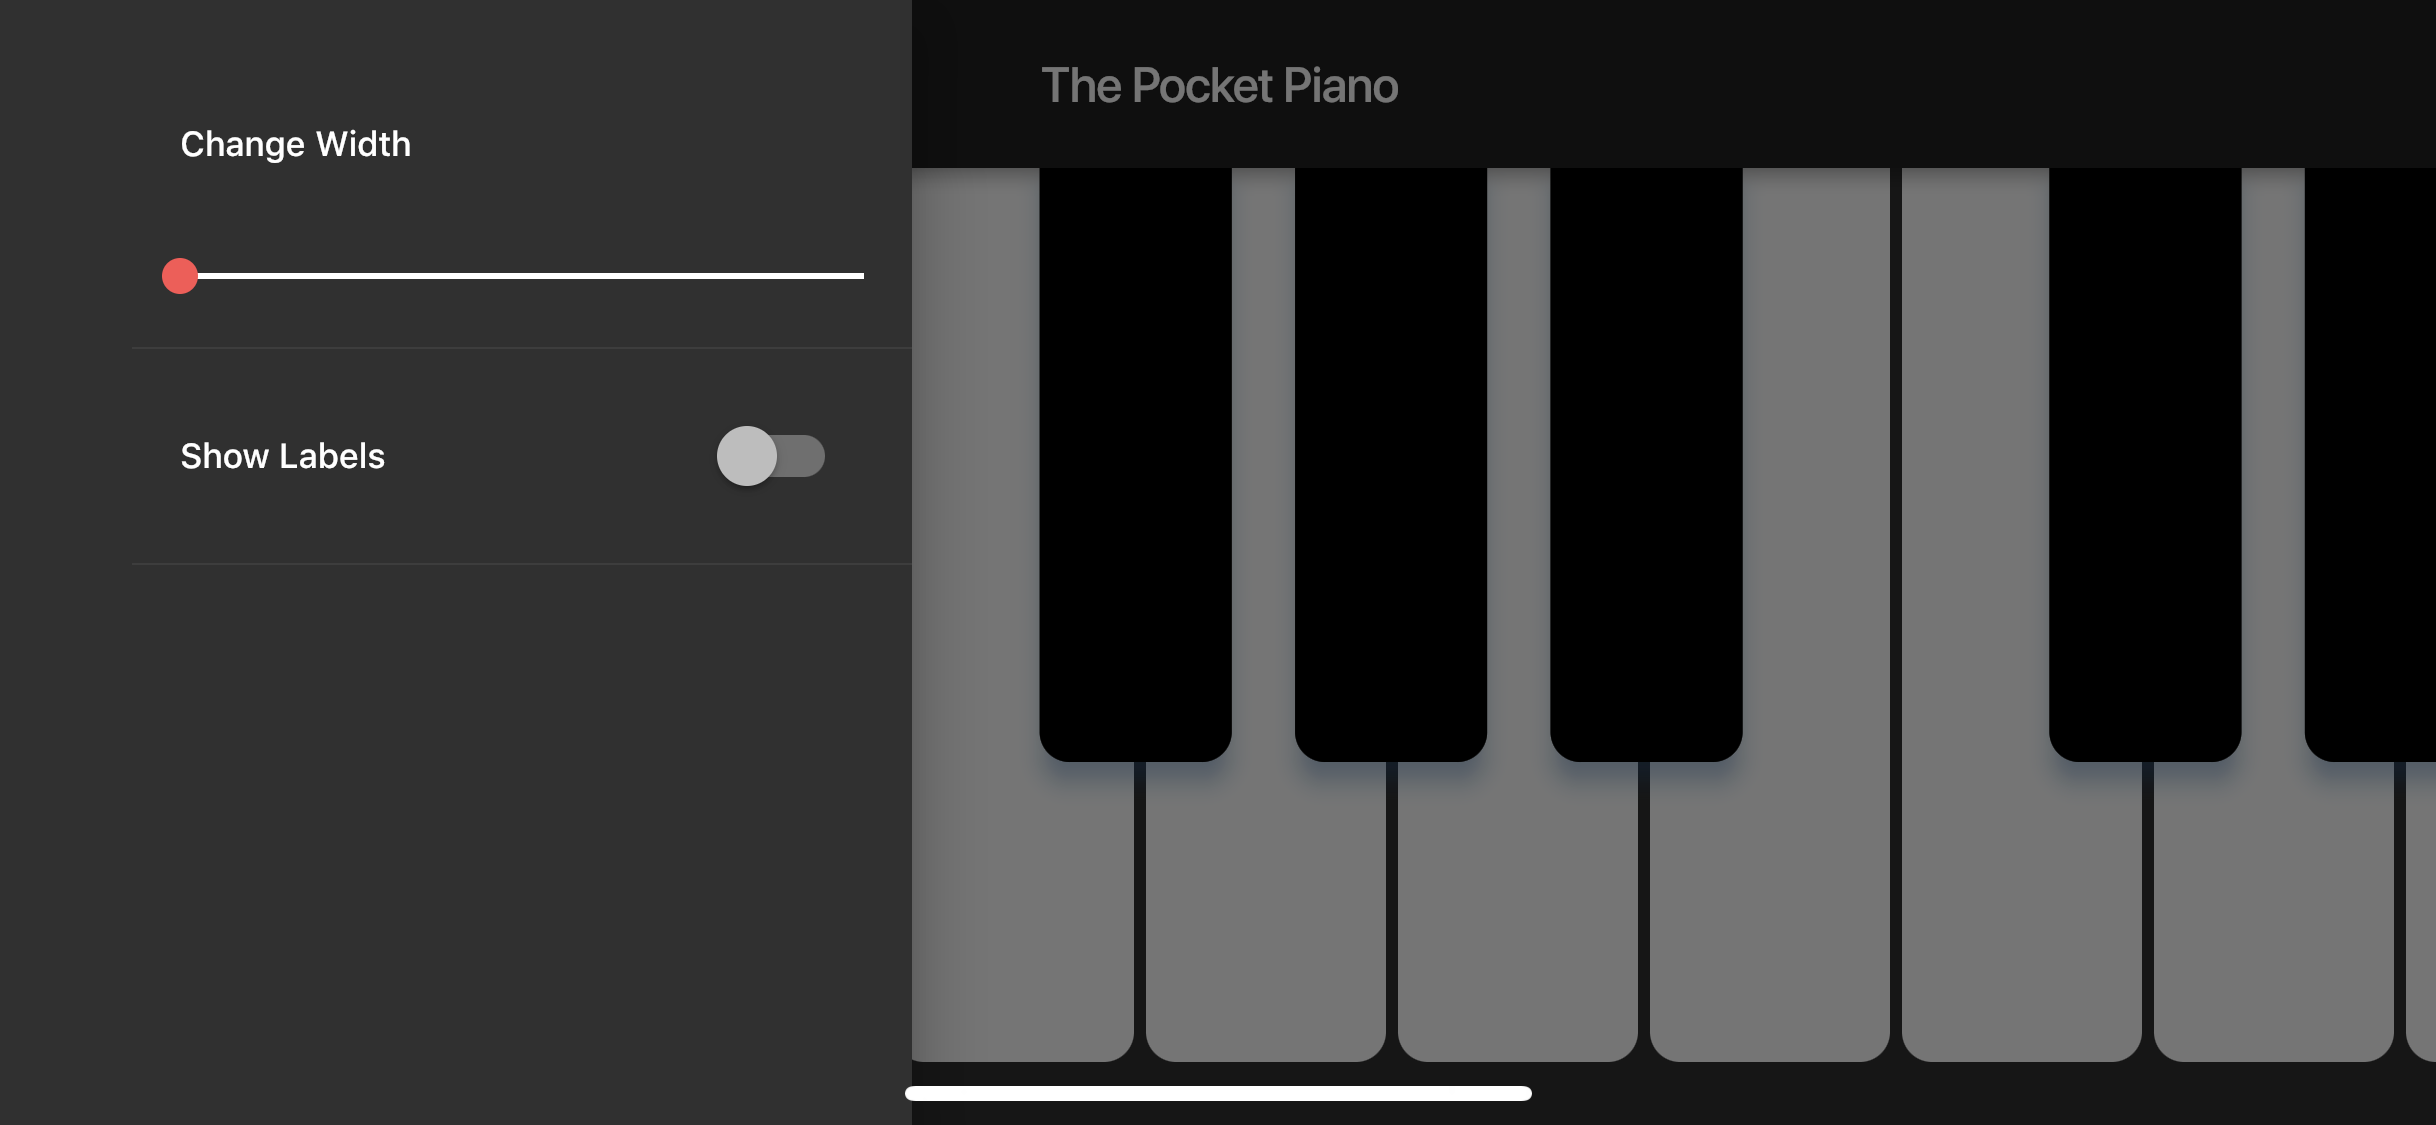 A Crossplatform Piano made with Flutter